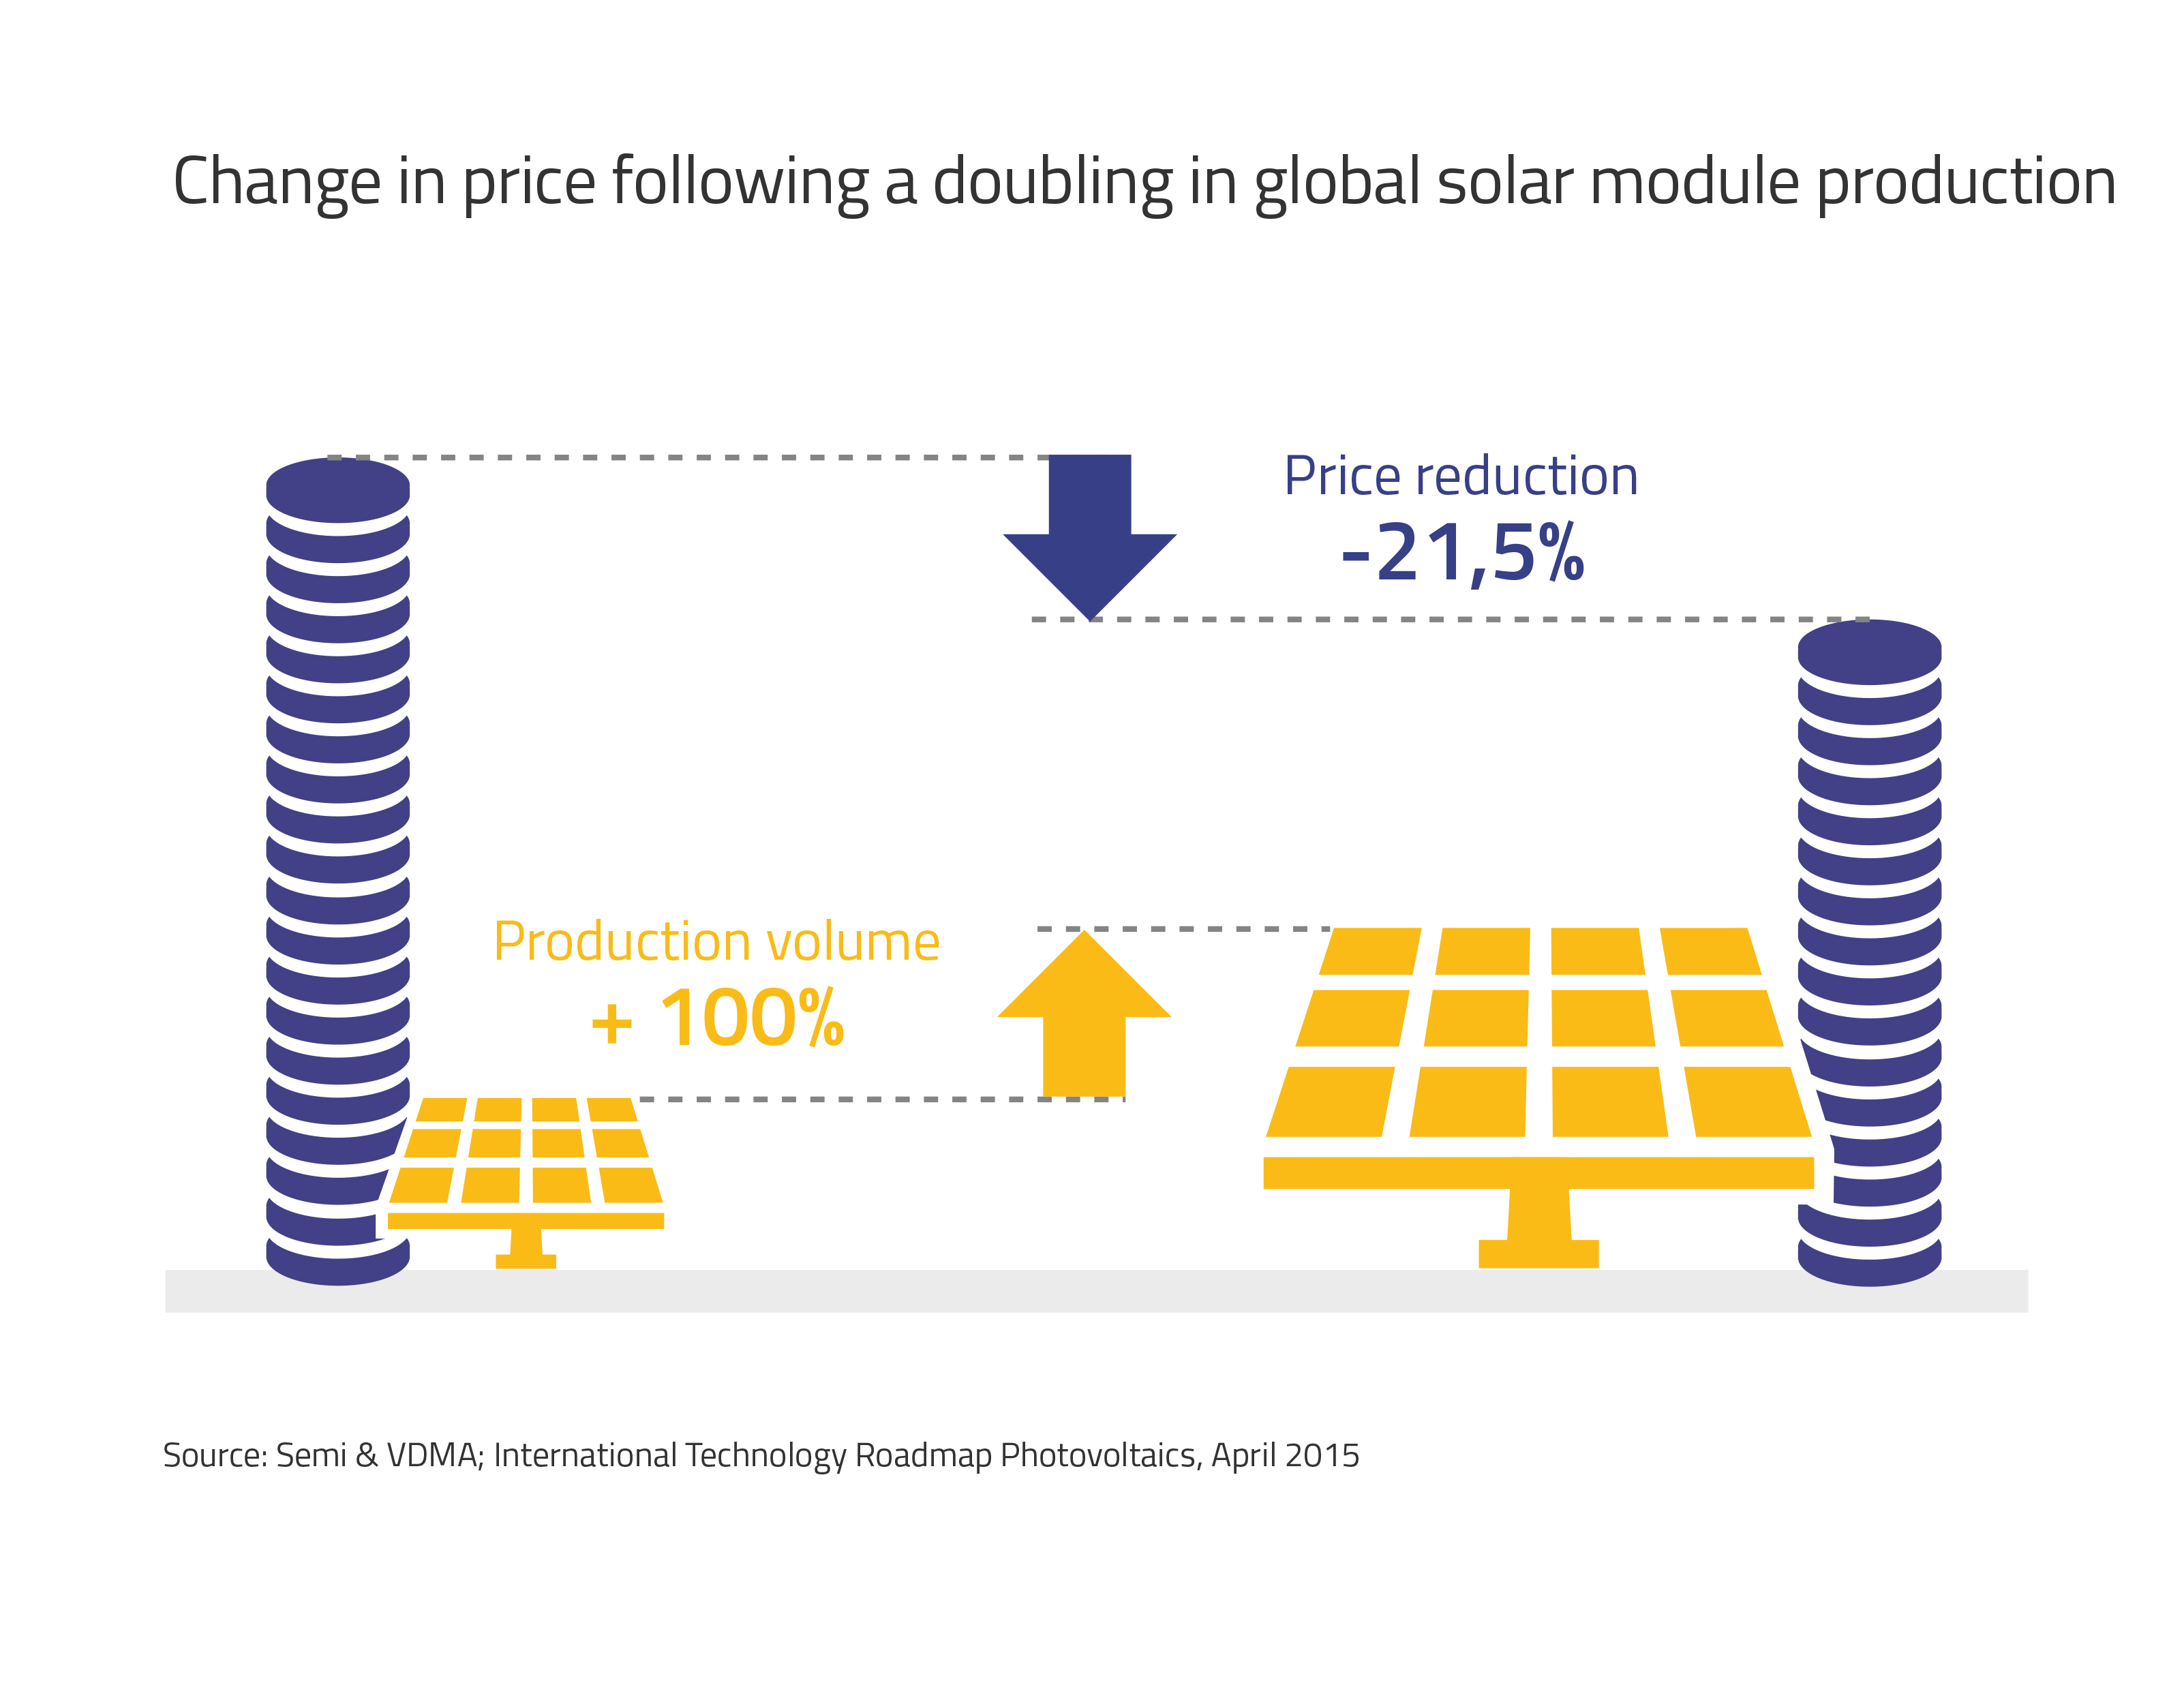 Change in price following a doubling in global solarmudule production